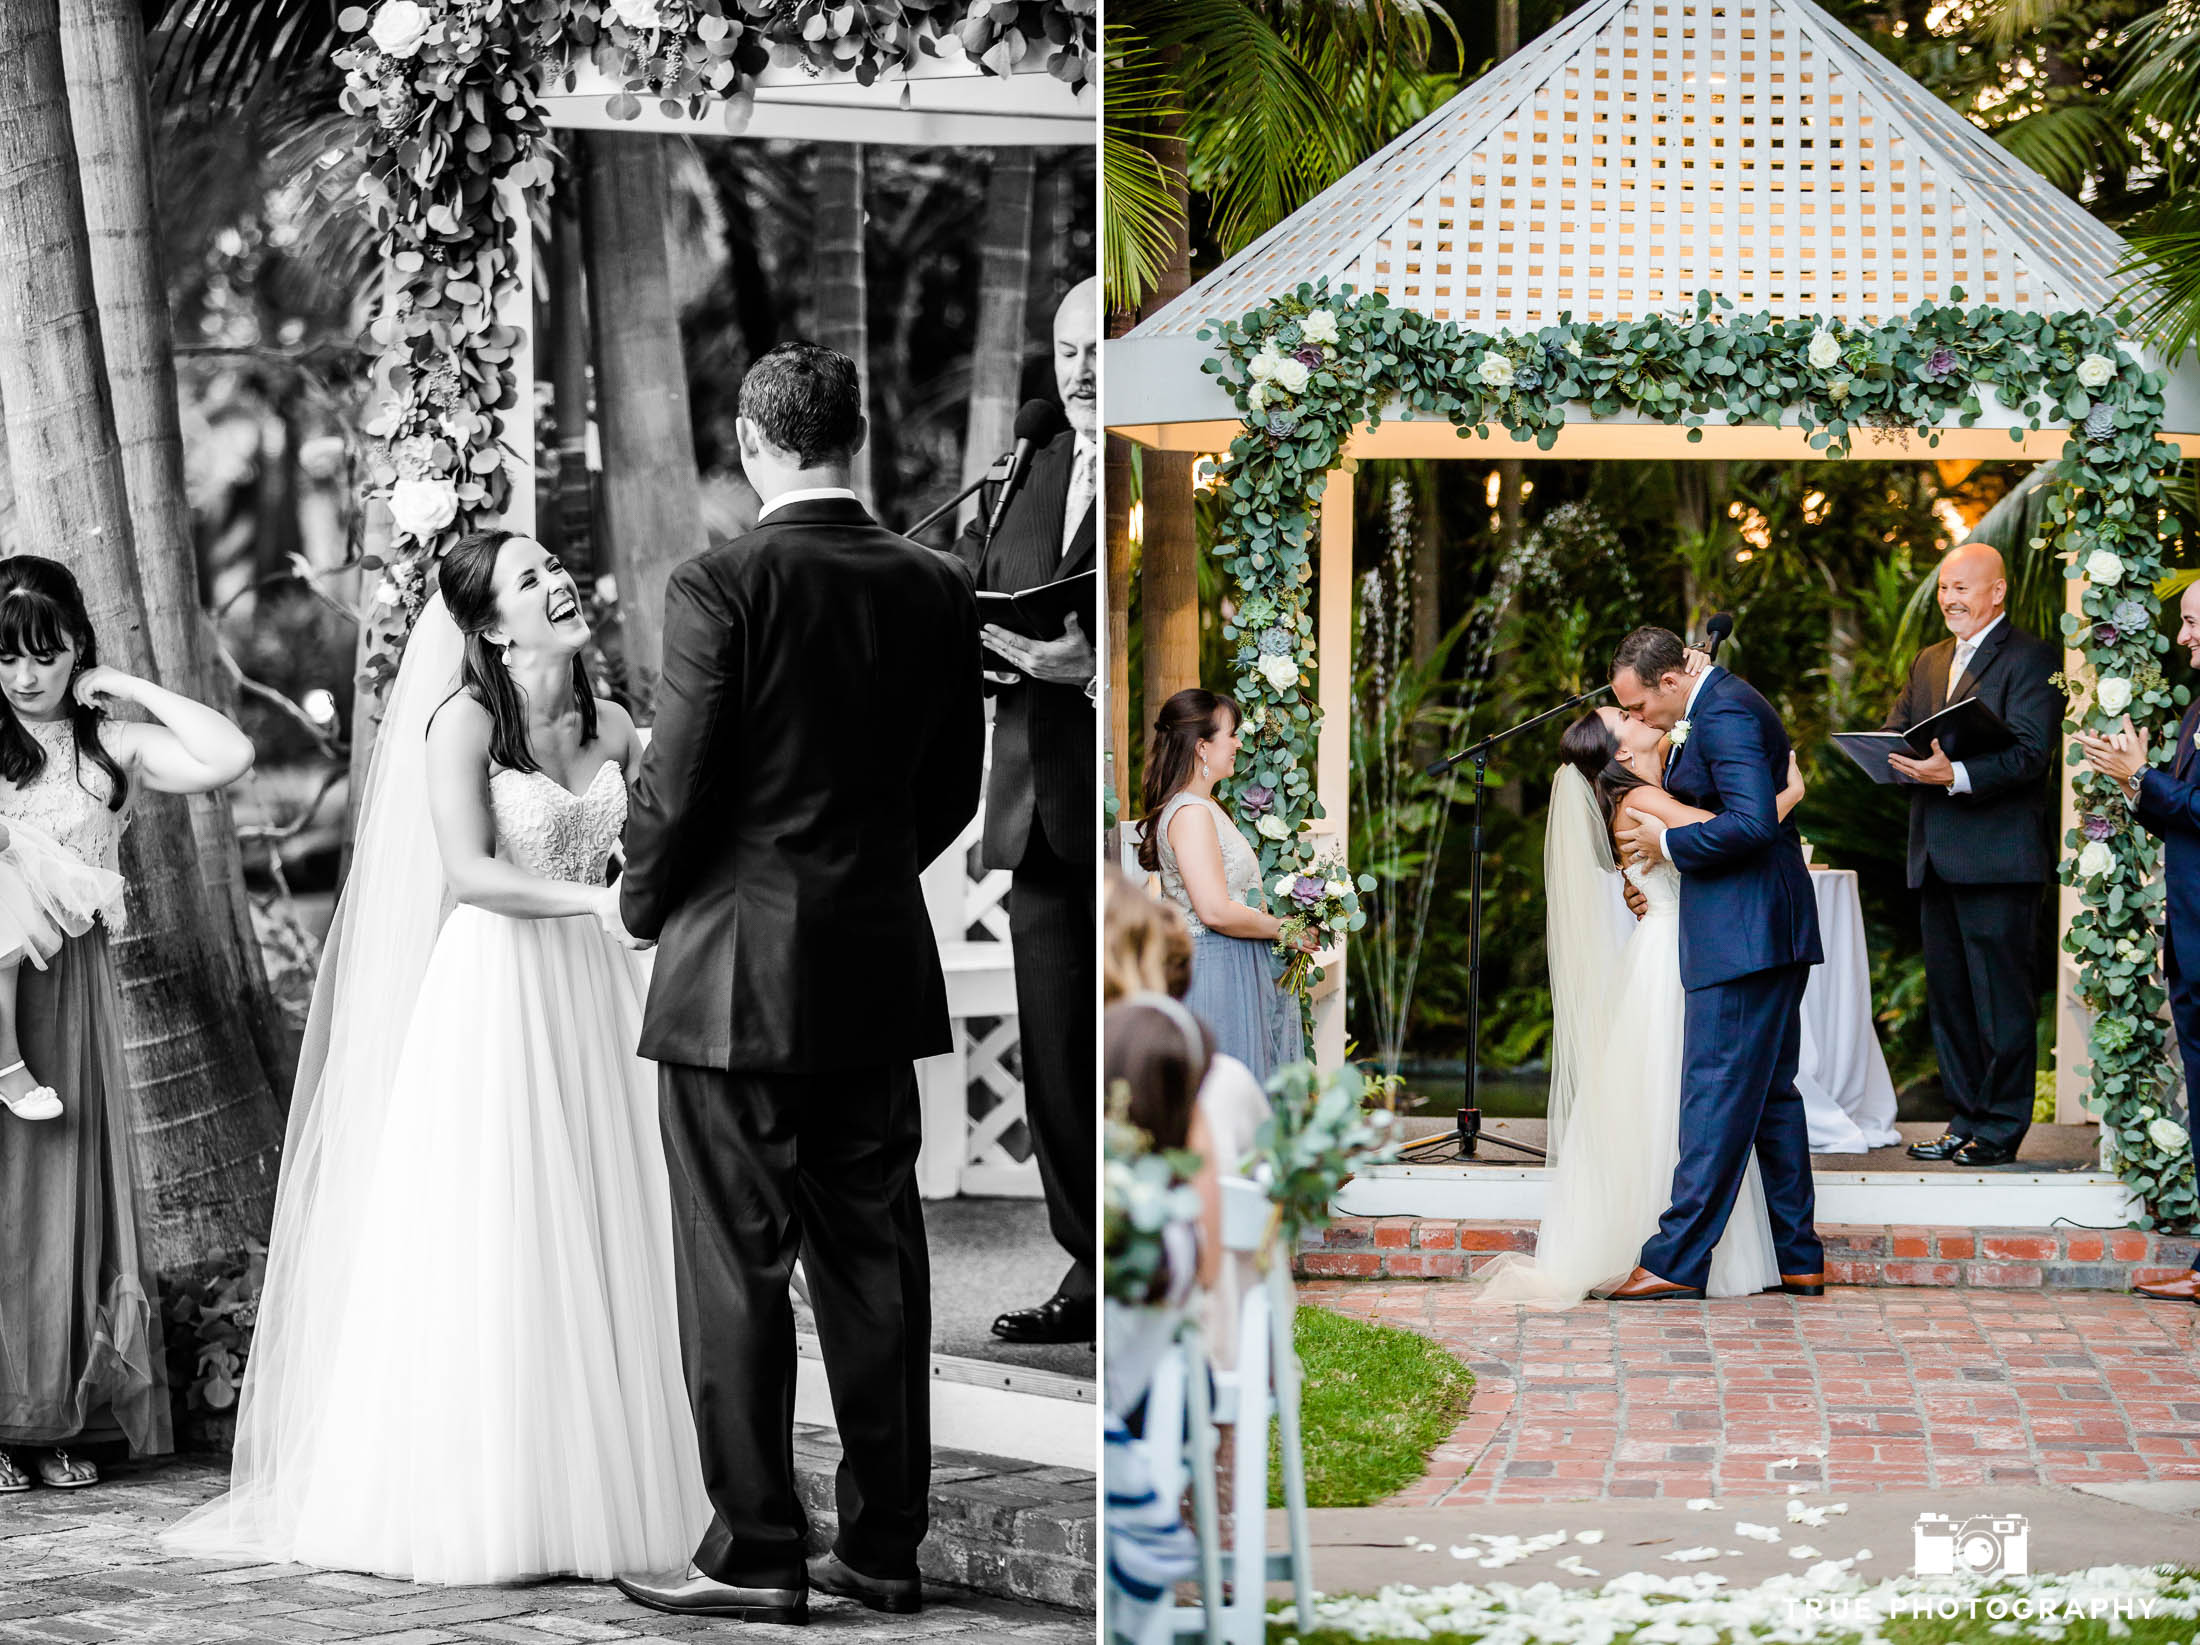 Bride and Groom share first kiss during wedding ceremony